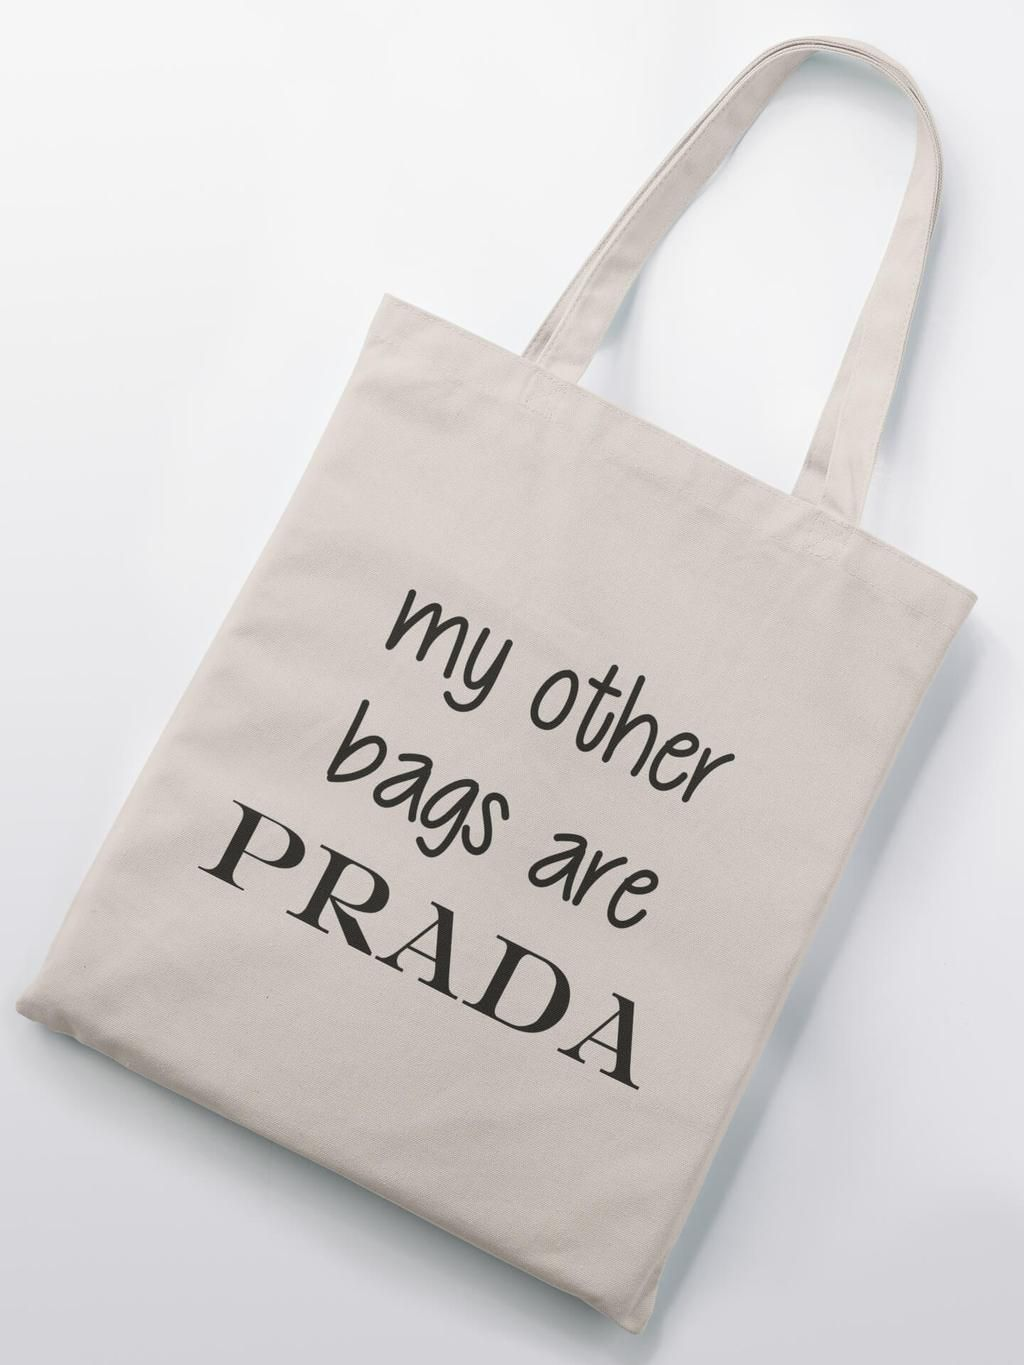 24fcc9a8e18 Sac tote bag rigolo : my other bags are PRADA | Tote bags | Tote bag ...